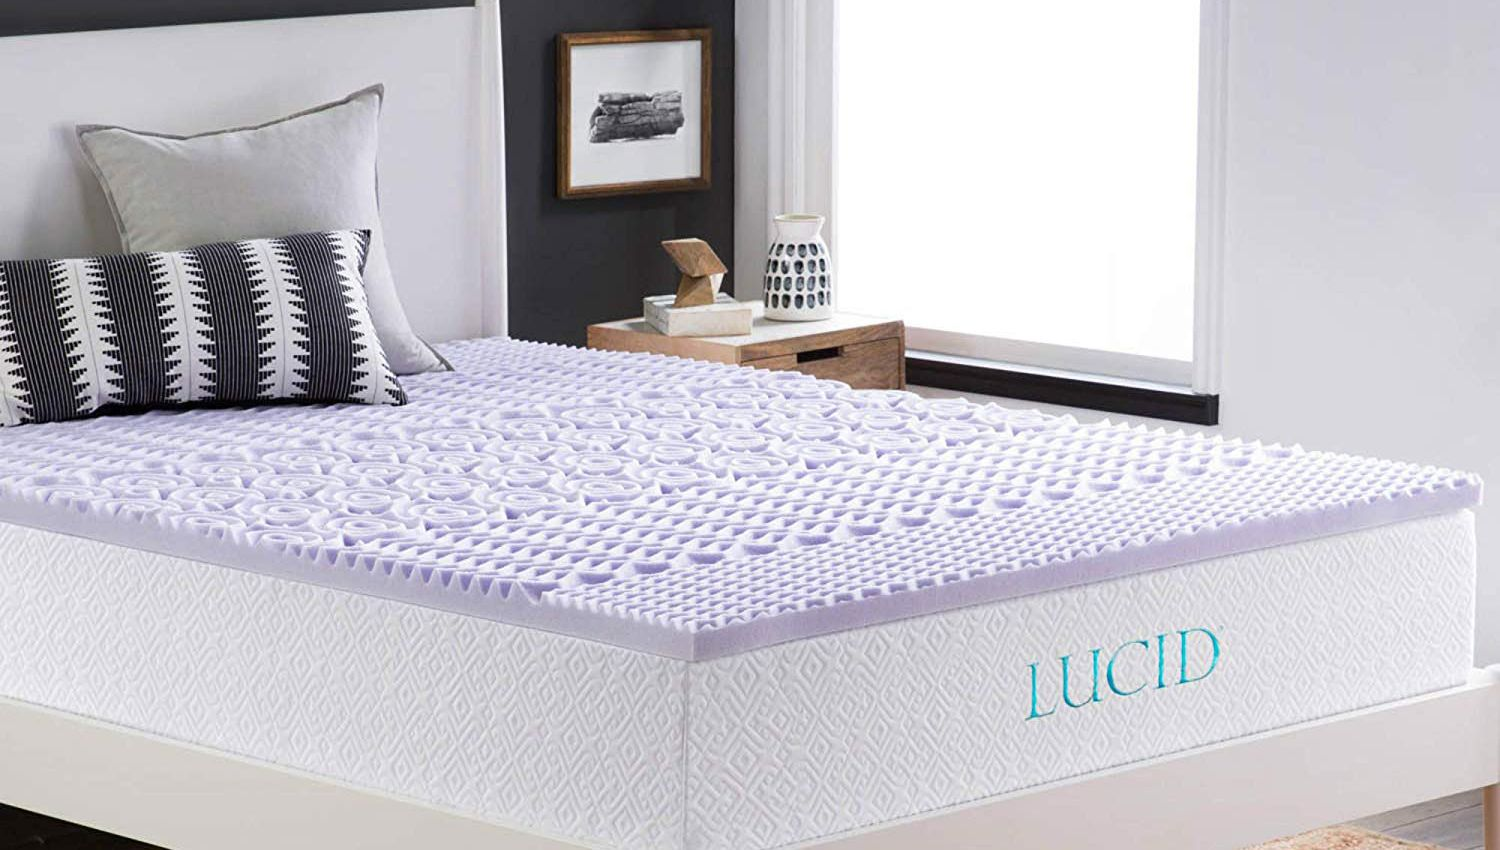 I Tried The $48 Mattress Topper Amazon Customers Are Obsessed With, And Now I Understand